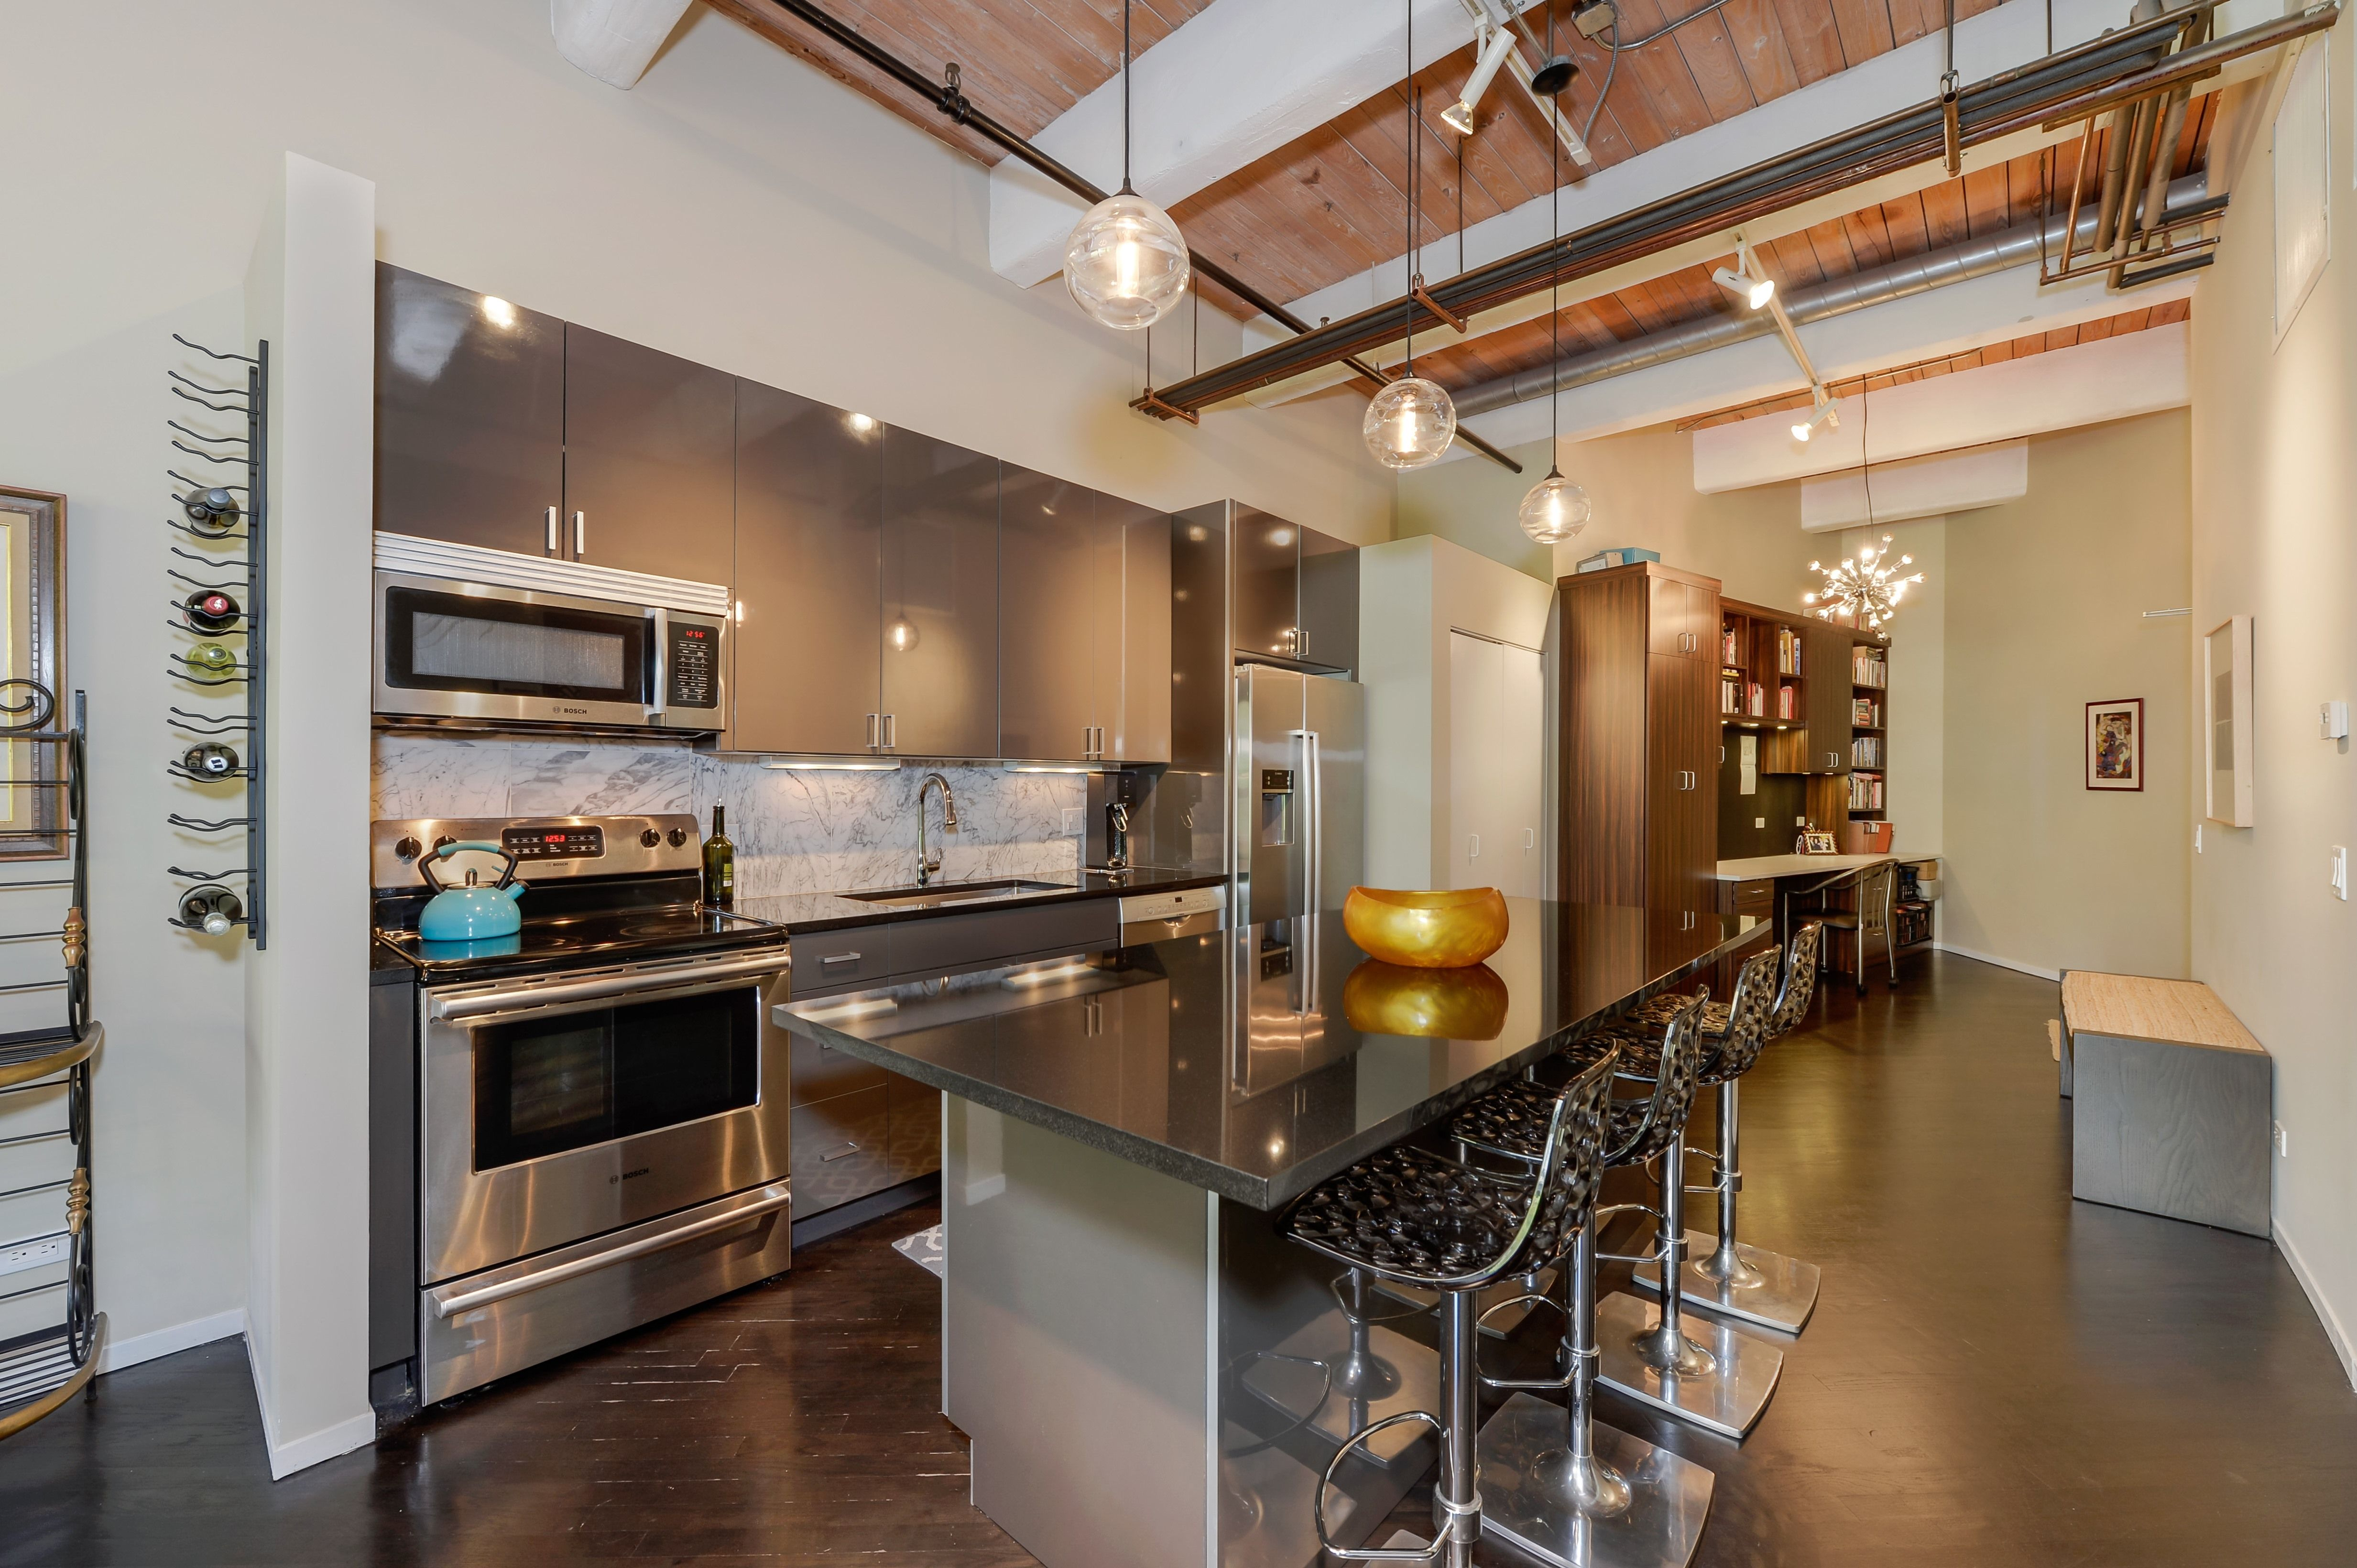 Stunning 1 Bedroom Timber Loft In Bucktown With An Open Kitchen Pendant Lighting Hardwo One Bedroom Apartment Chicago Apartments For Rent Apartments For Rent